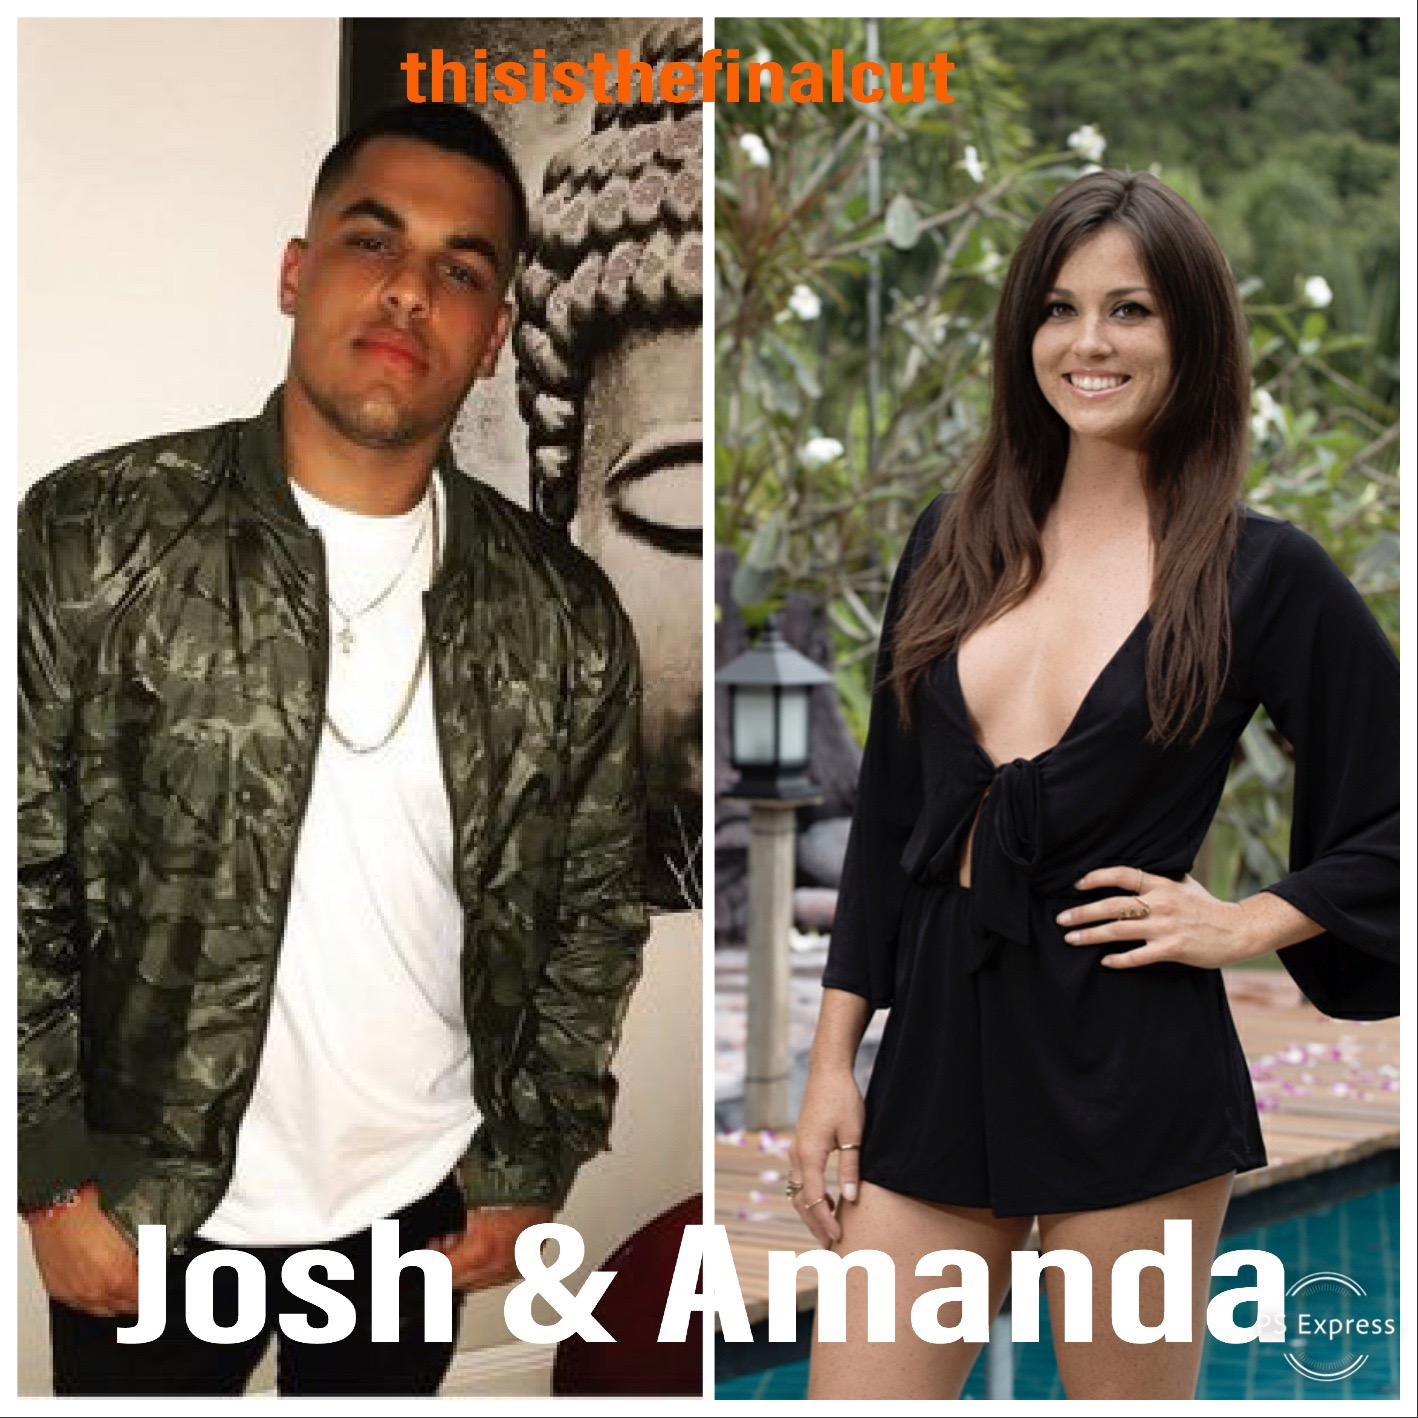 Oh Amanda. I root for her to put her money where her mouth is. I think she's been doomed with her partner —although Josh has not been that bad. Part of me thinks teams are afraid to call them into an elim because the men don't want to lose to Josh, and the women can't lose to Amanda. That fear might take them to the final.